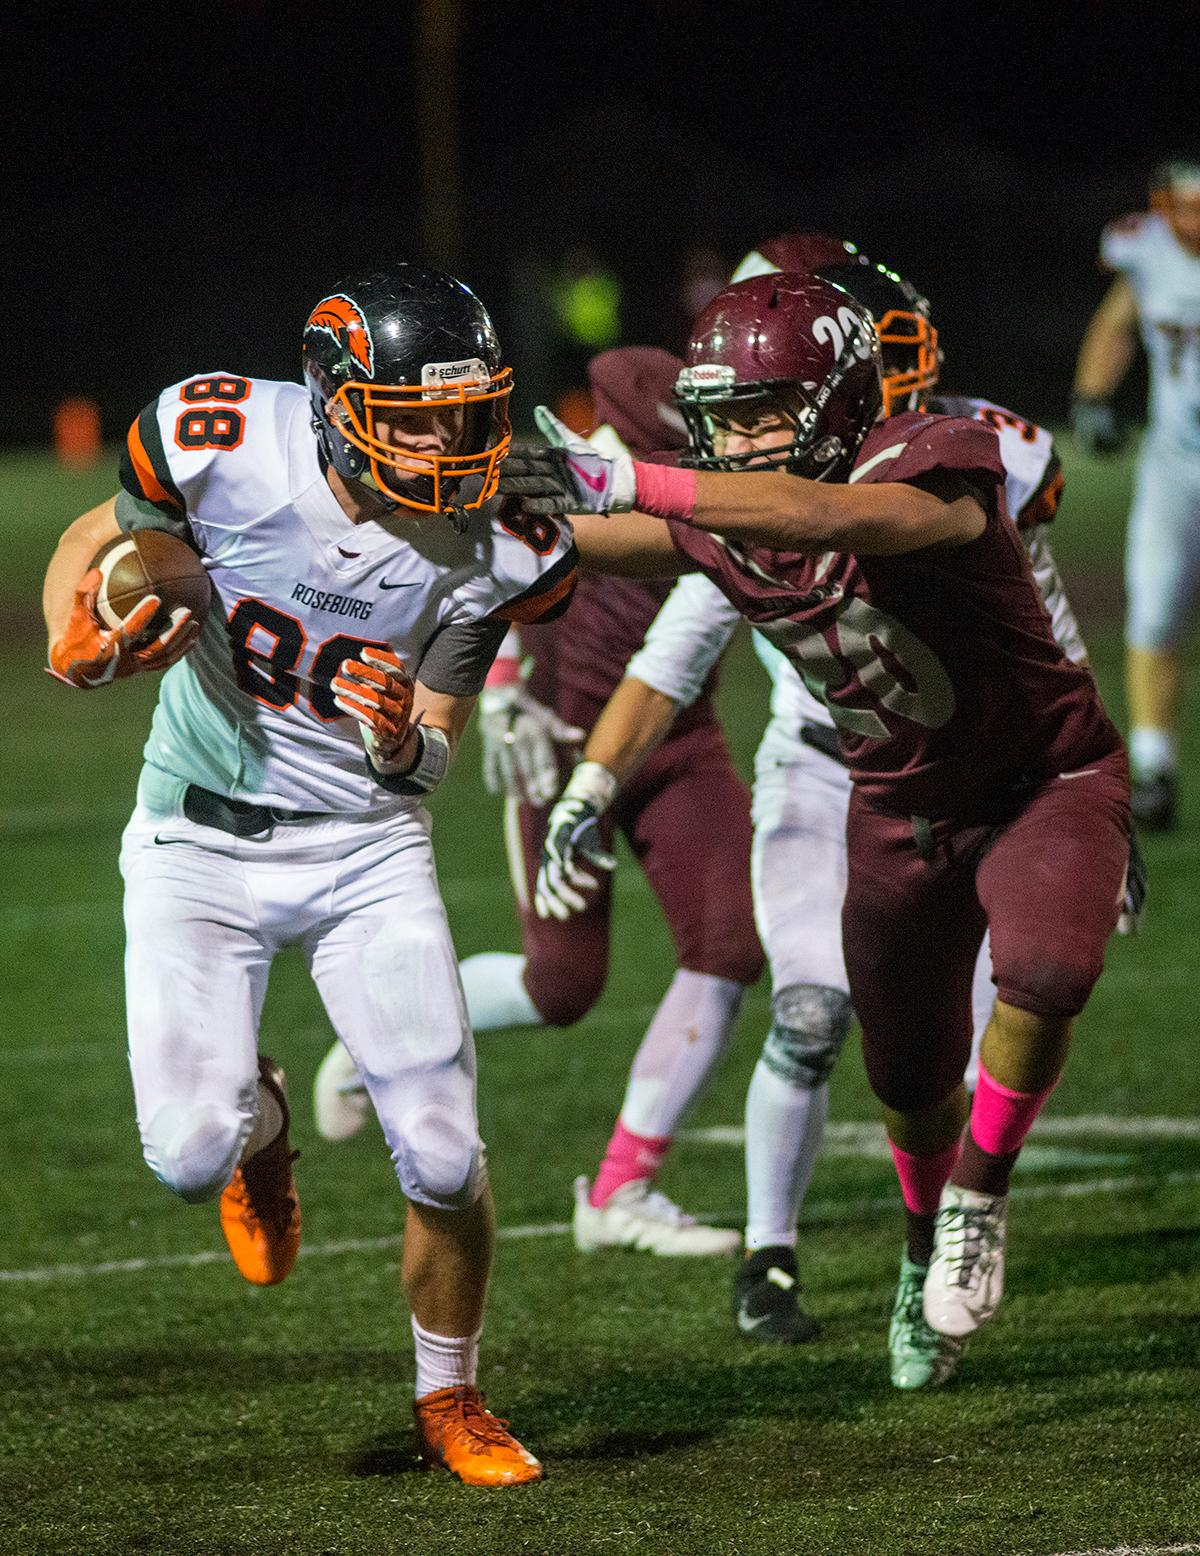 Roseburg Indians Garrett Russell (#88) attempts to keep the ball away from Willamette Wolverines Tanner Webb (#20). Roseburg Indians defeated Willamette Wolverines 21-20 at Wolverine Stadium on Friday night in Eugene. Photo by Rhianna Gelhart, Oregon News Lab